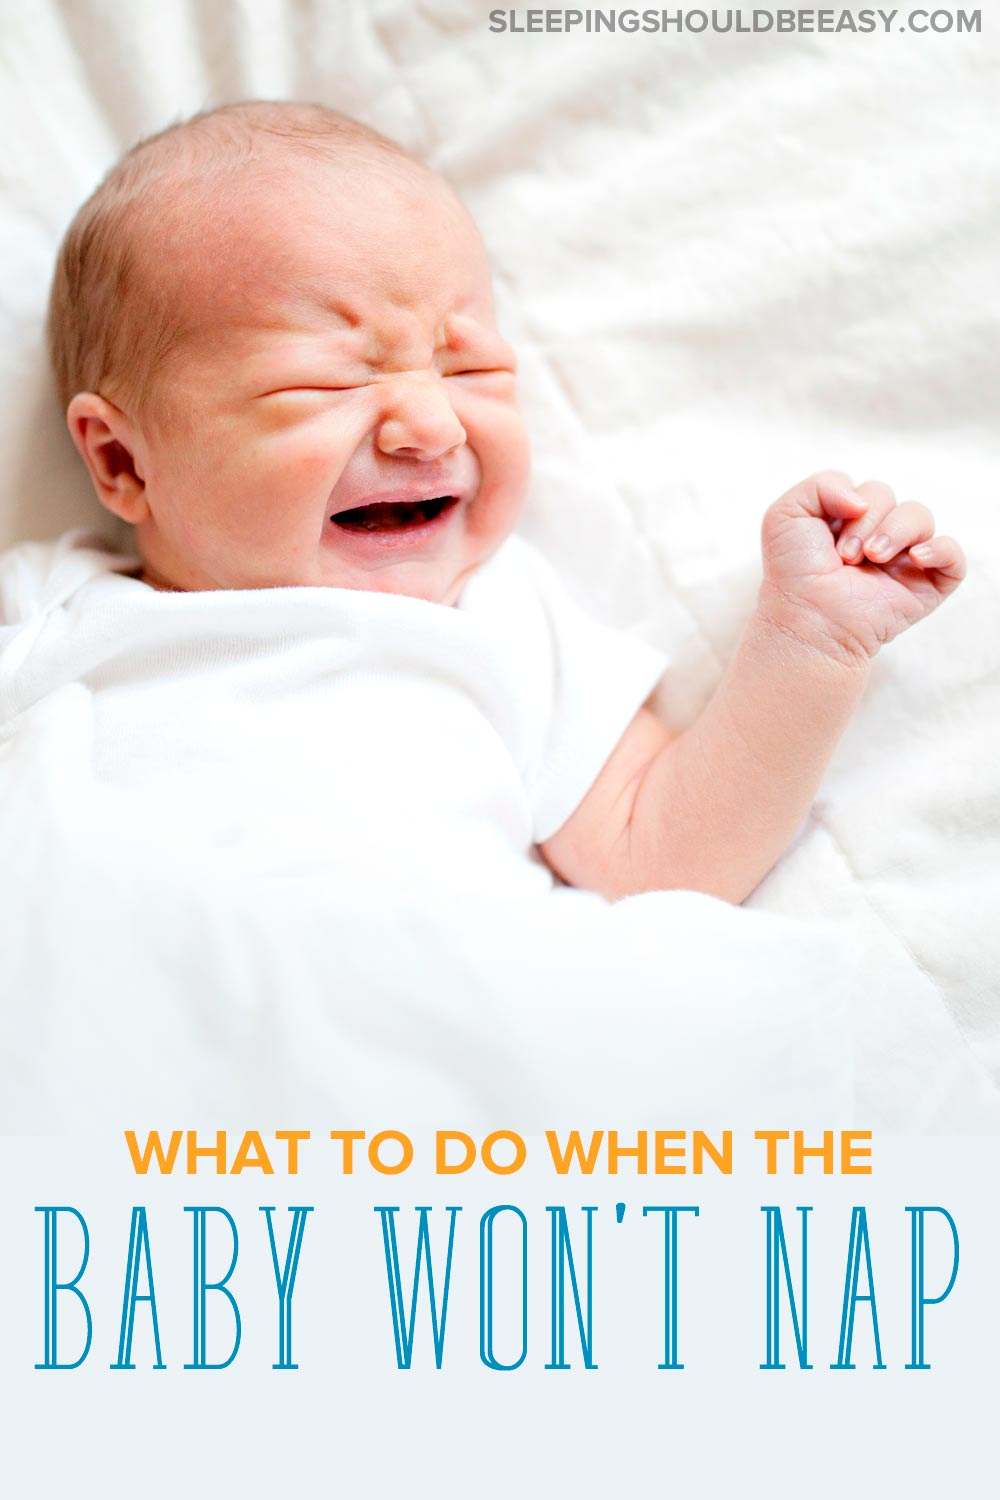 One of the biggest challenges for any mom or dad is a baby not napping. Learn what to do when the baby won't nap and how to get him to finally sleep. #baby